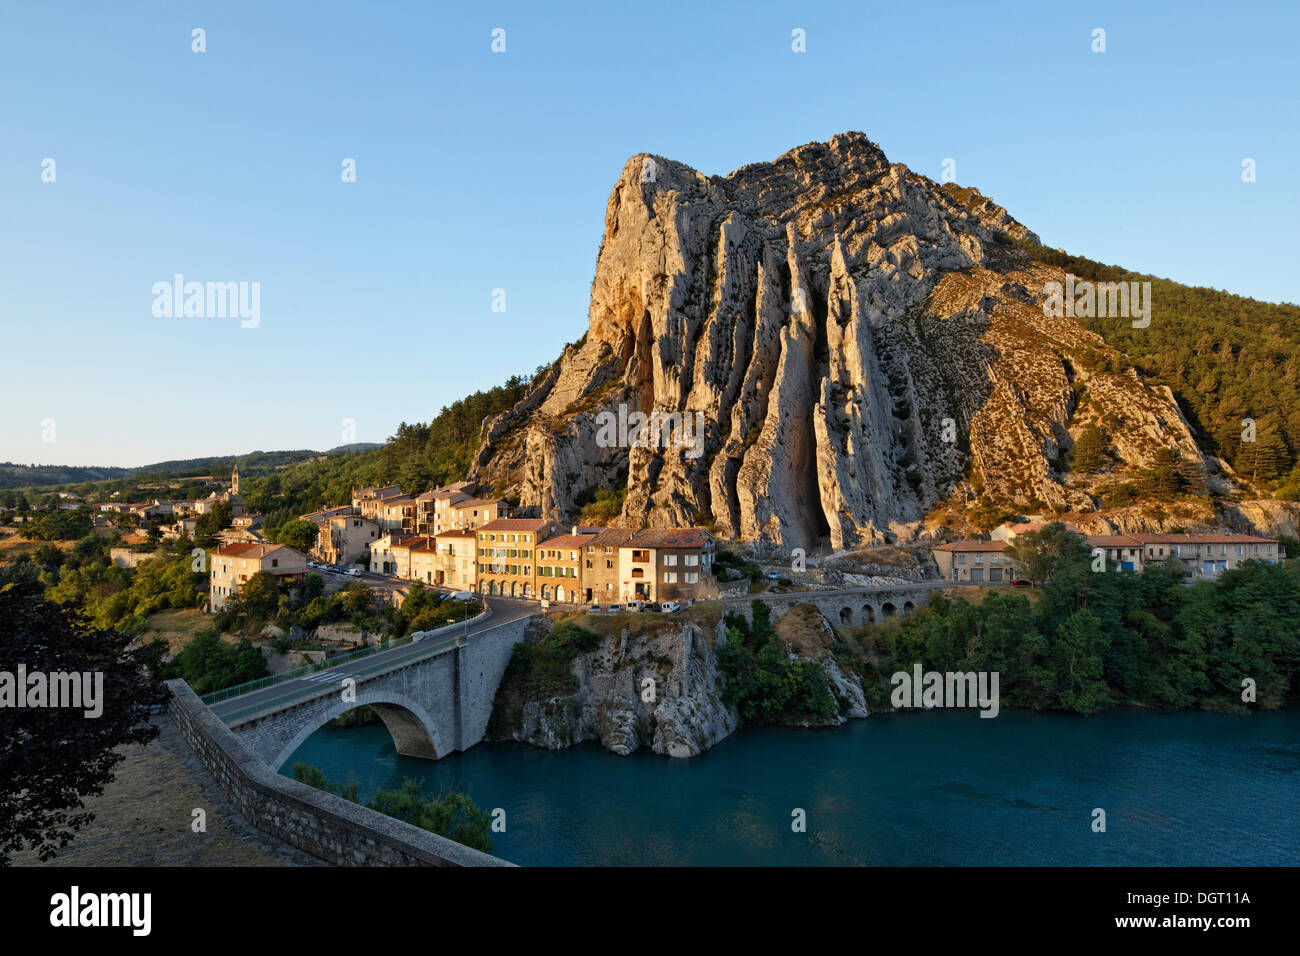 Sisteron on the Durance river, Rocher de la Baume opposite the old town, Provence region, Département Alpes-de-Haute-Provence - Stock Image